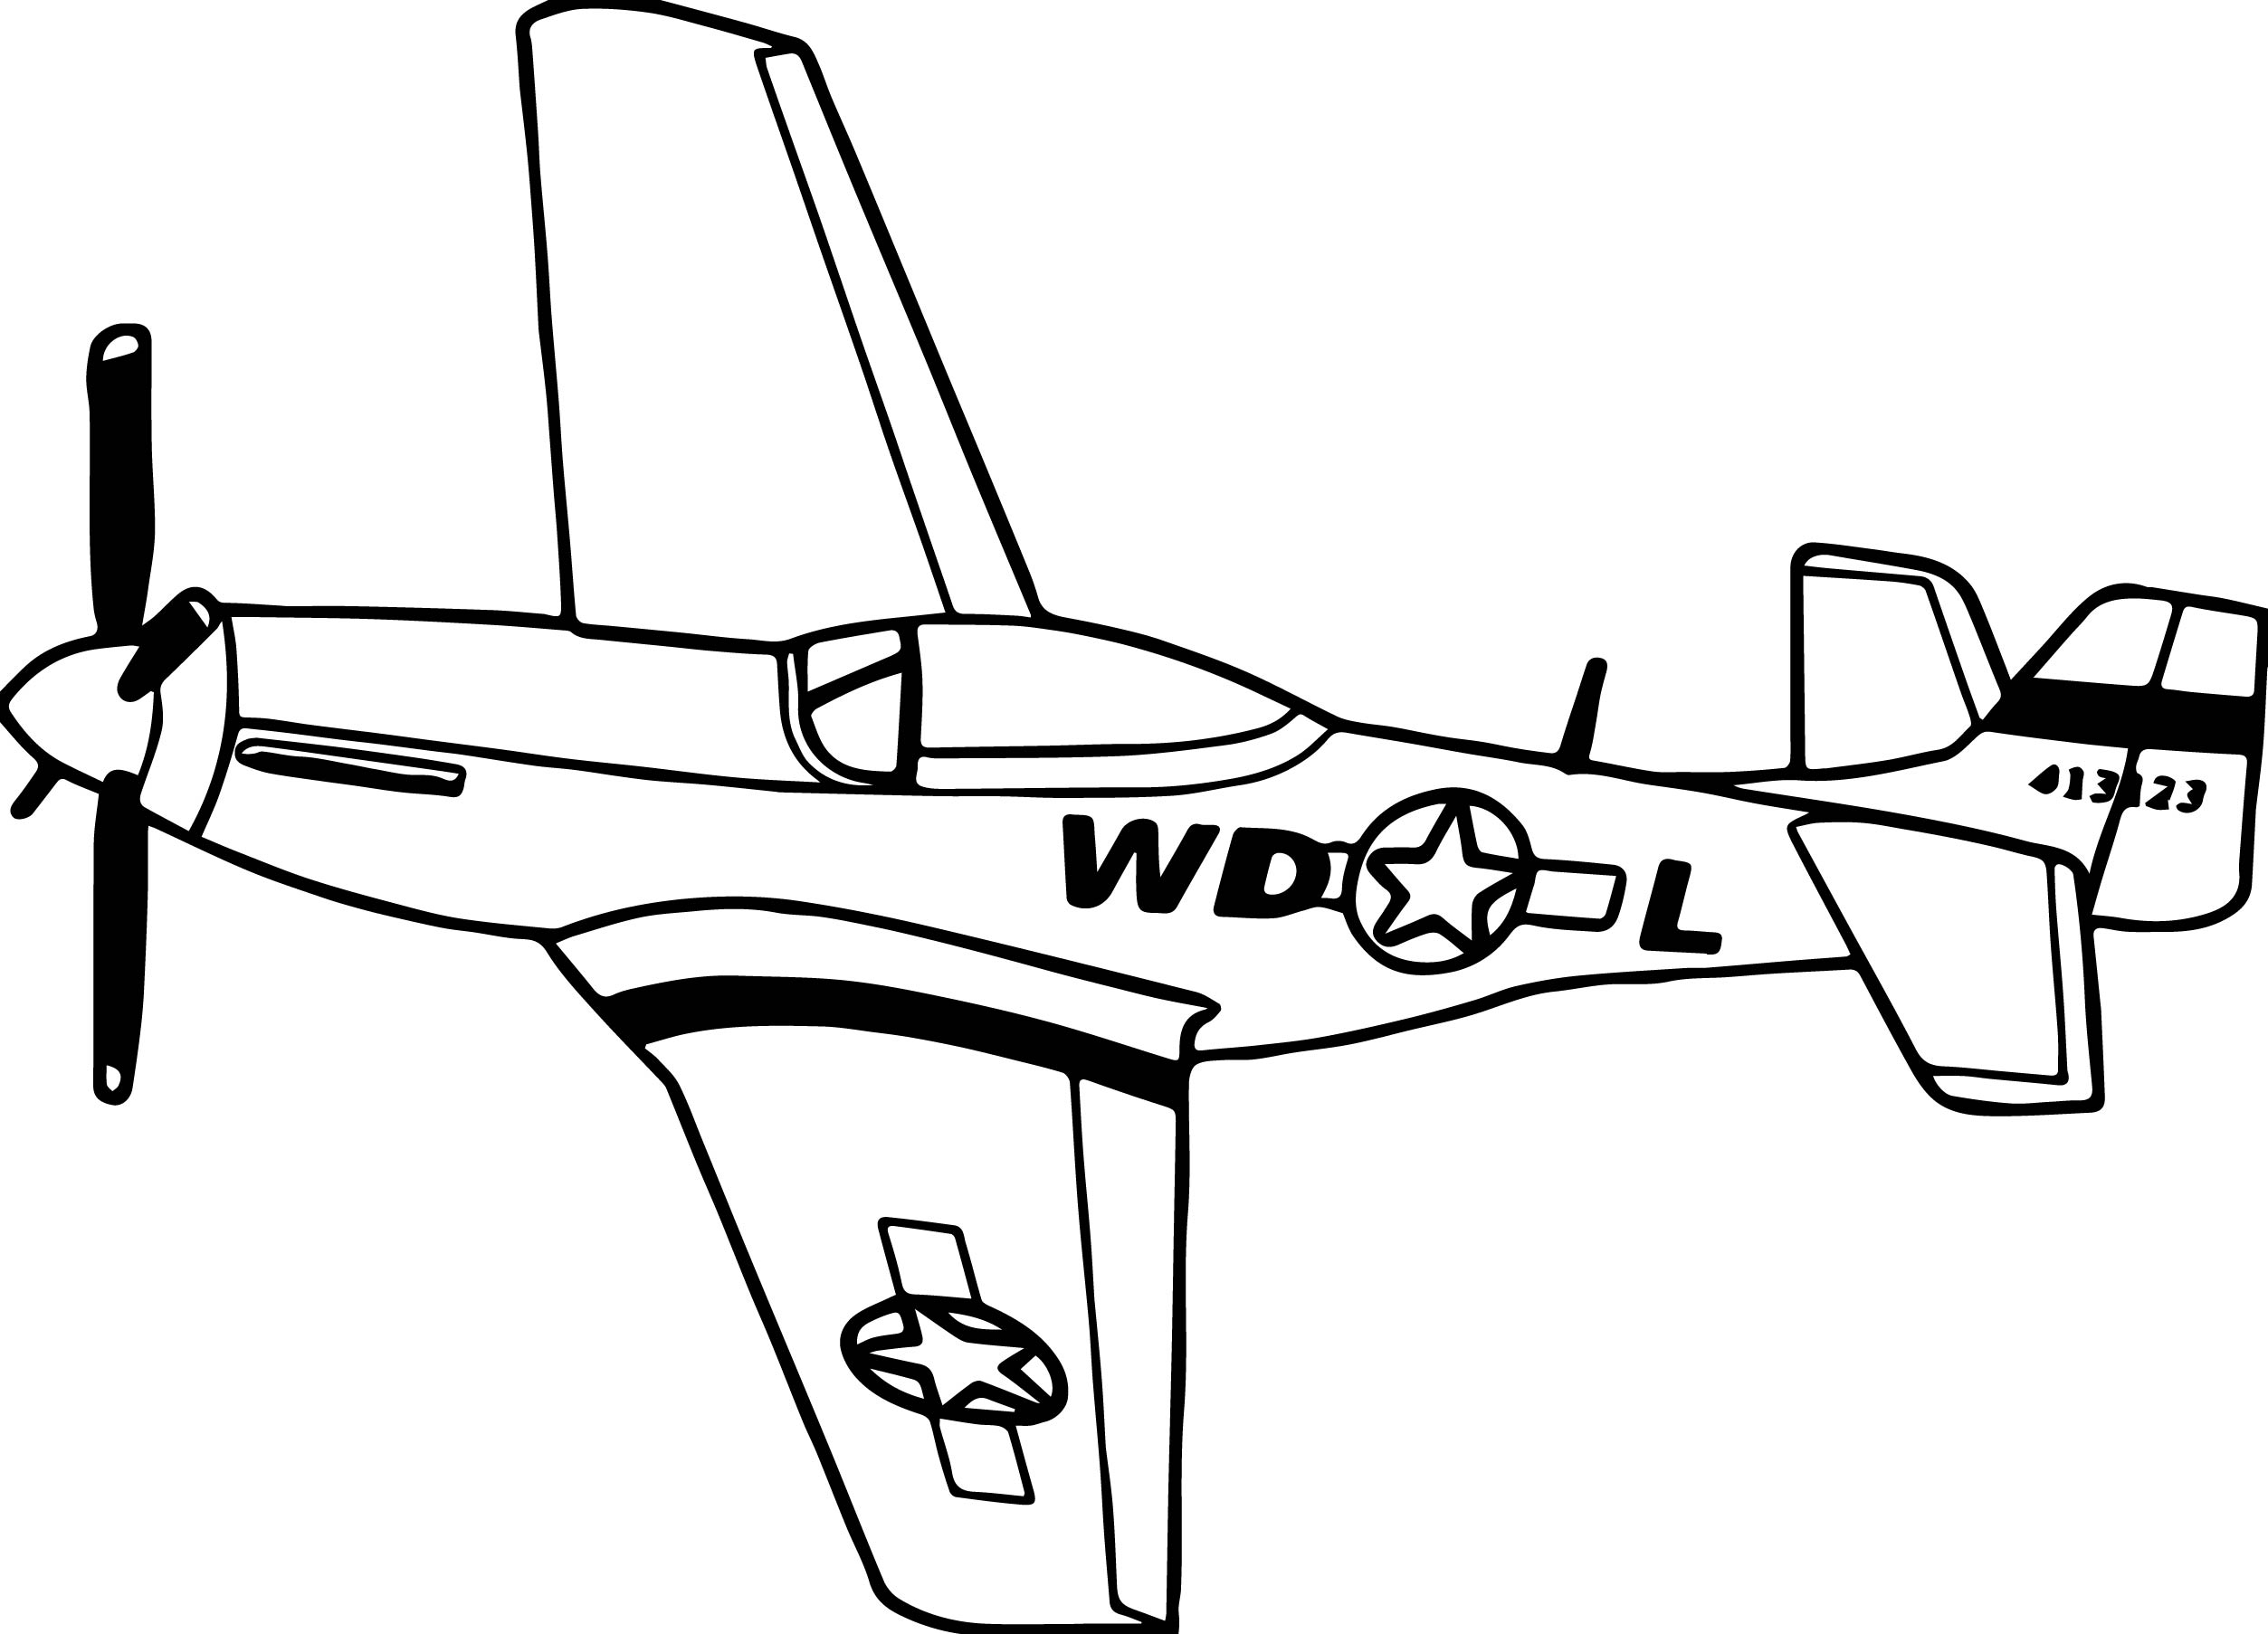 old planes coloring pages - photo#5